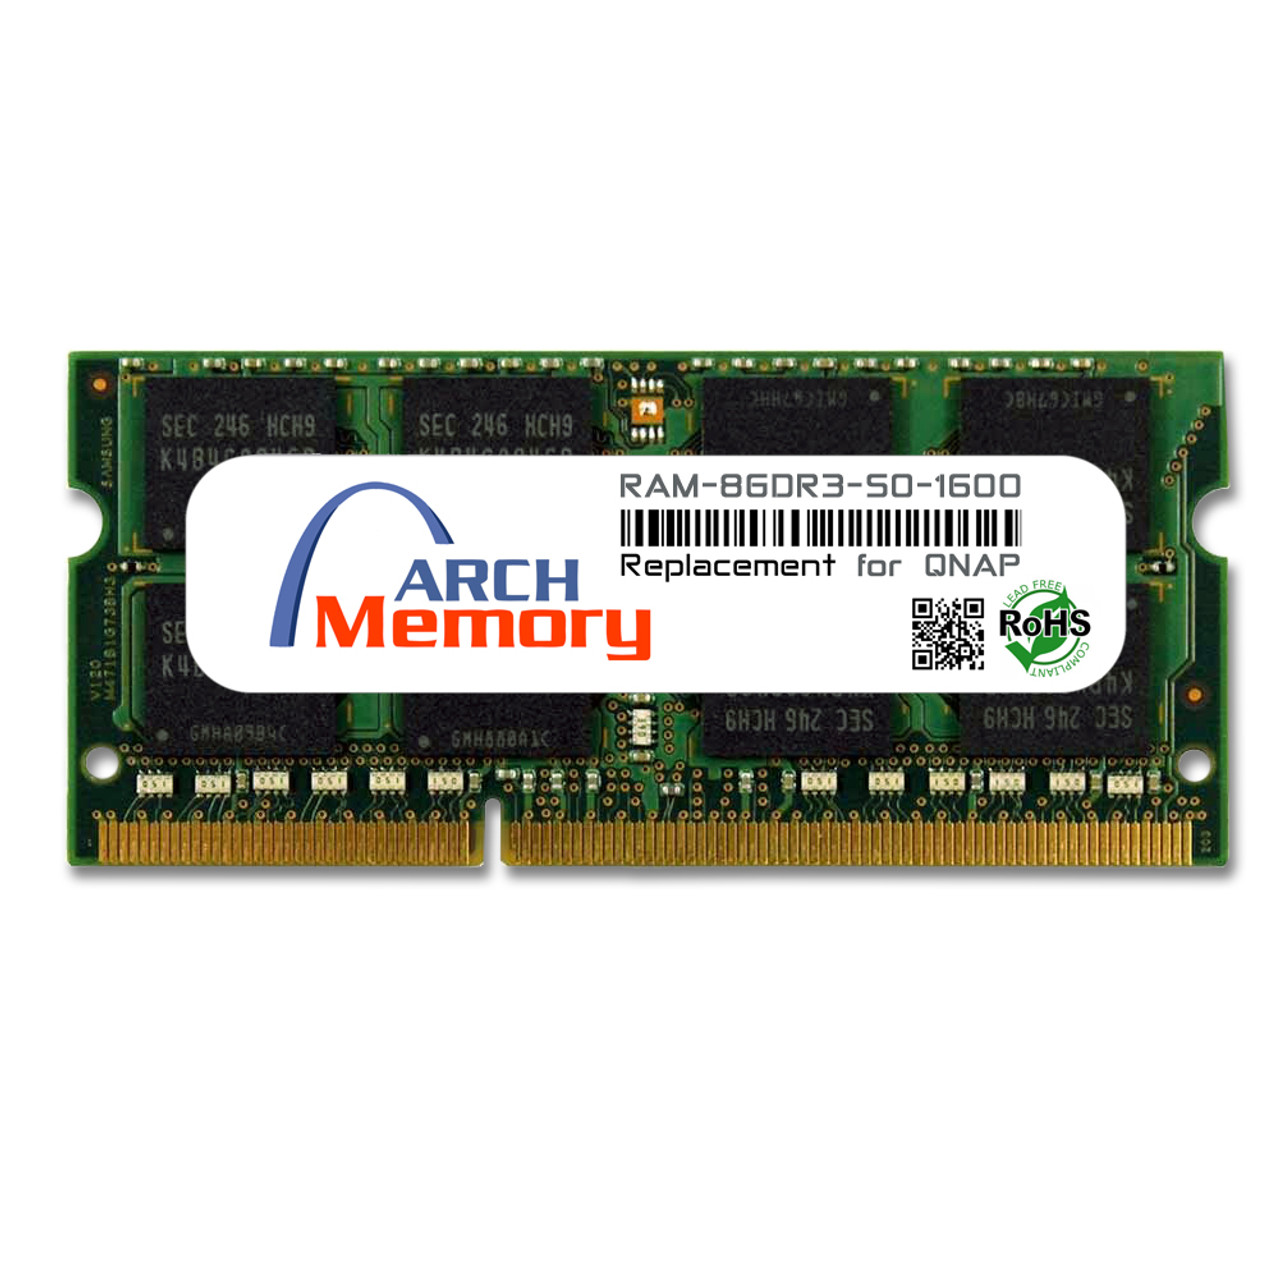 8GB RAM-8GDR3-SO-1600 DDR3-1600 PC3-12800 204-Pin SODIMM RAM | Memory for QNAP